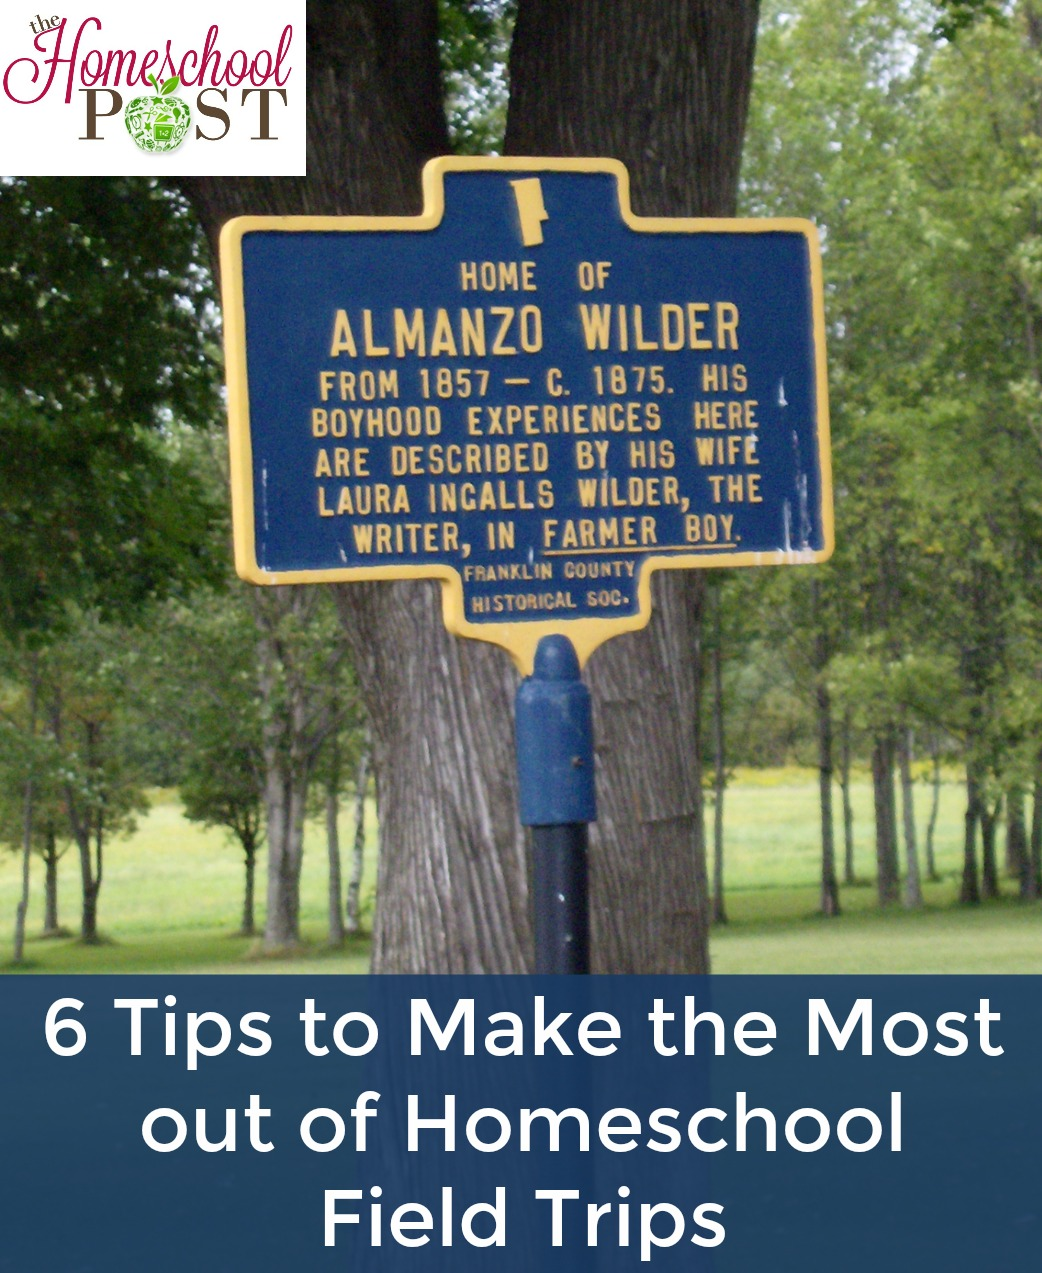 How to make the most of homeschool field trips | 6 tips for making the most of homeschool field trips